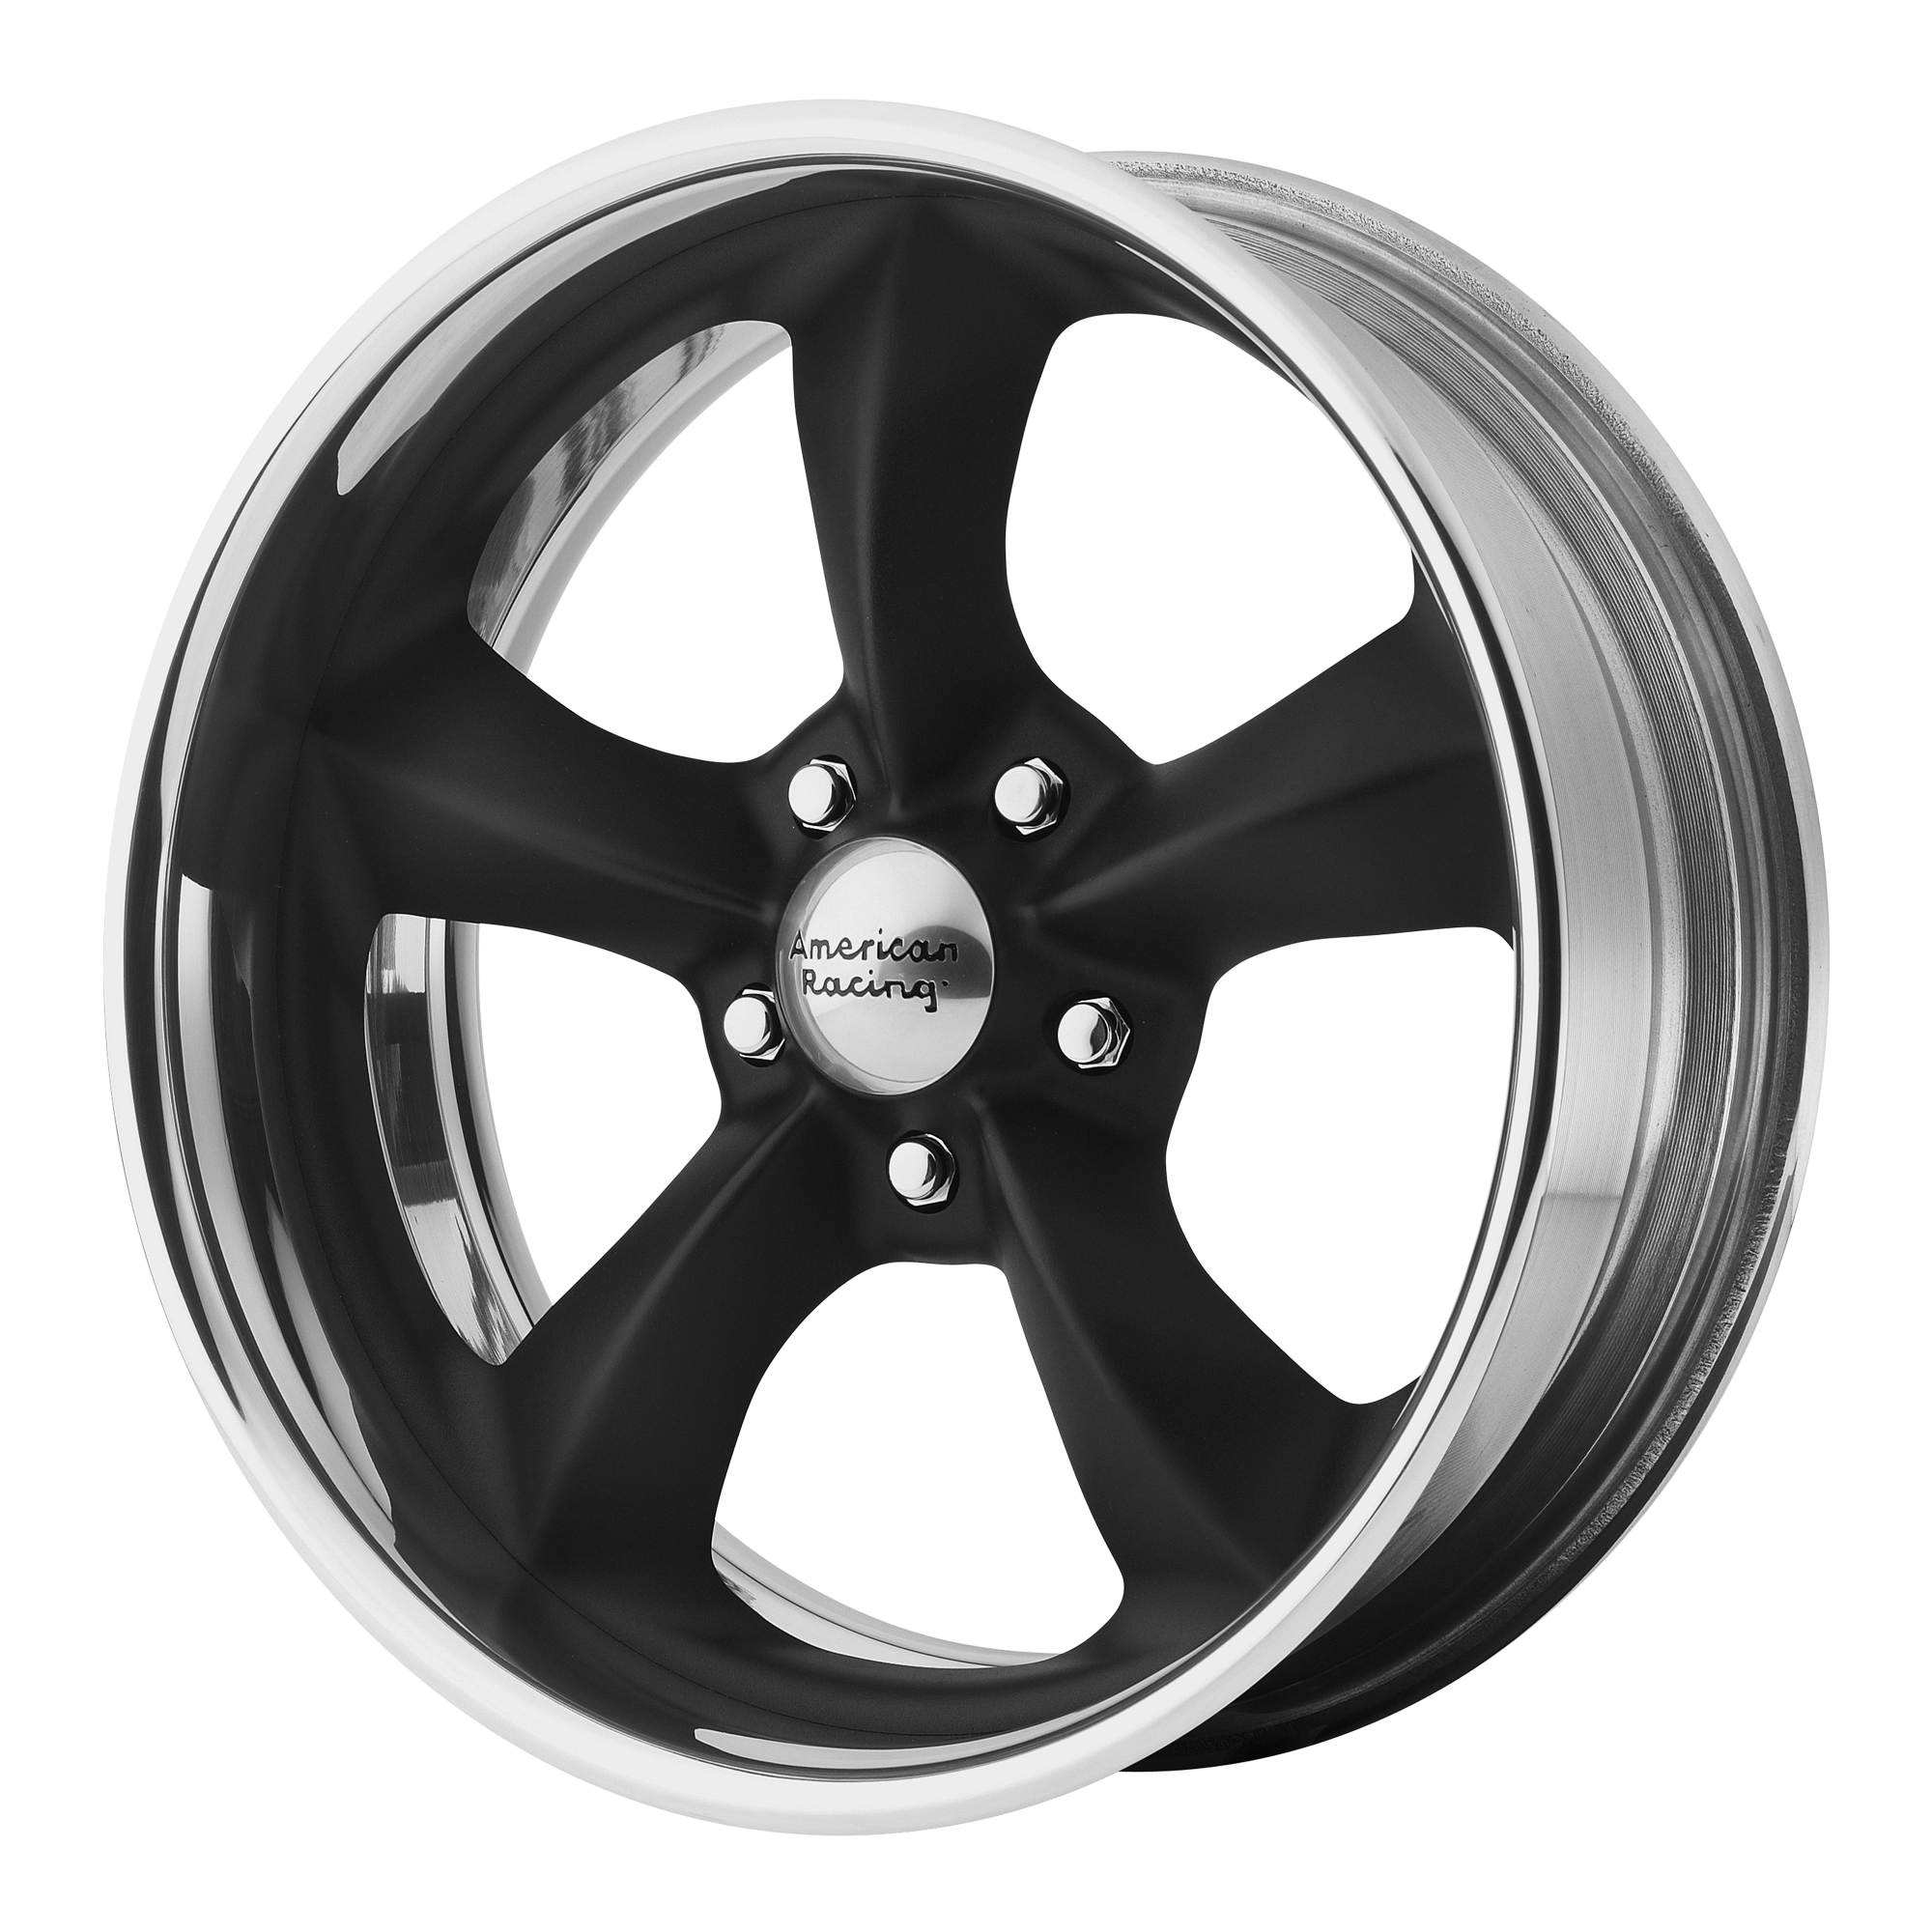 American Racing Wheels VN425 TORQ THRUST SL Black